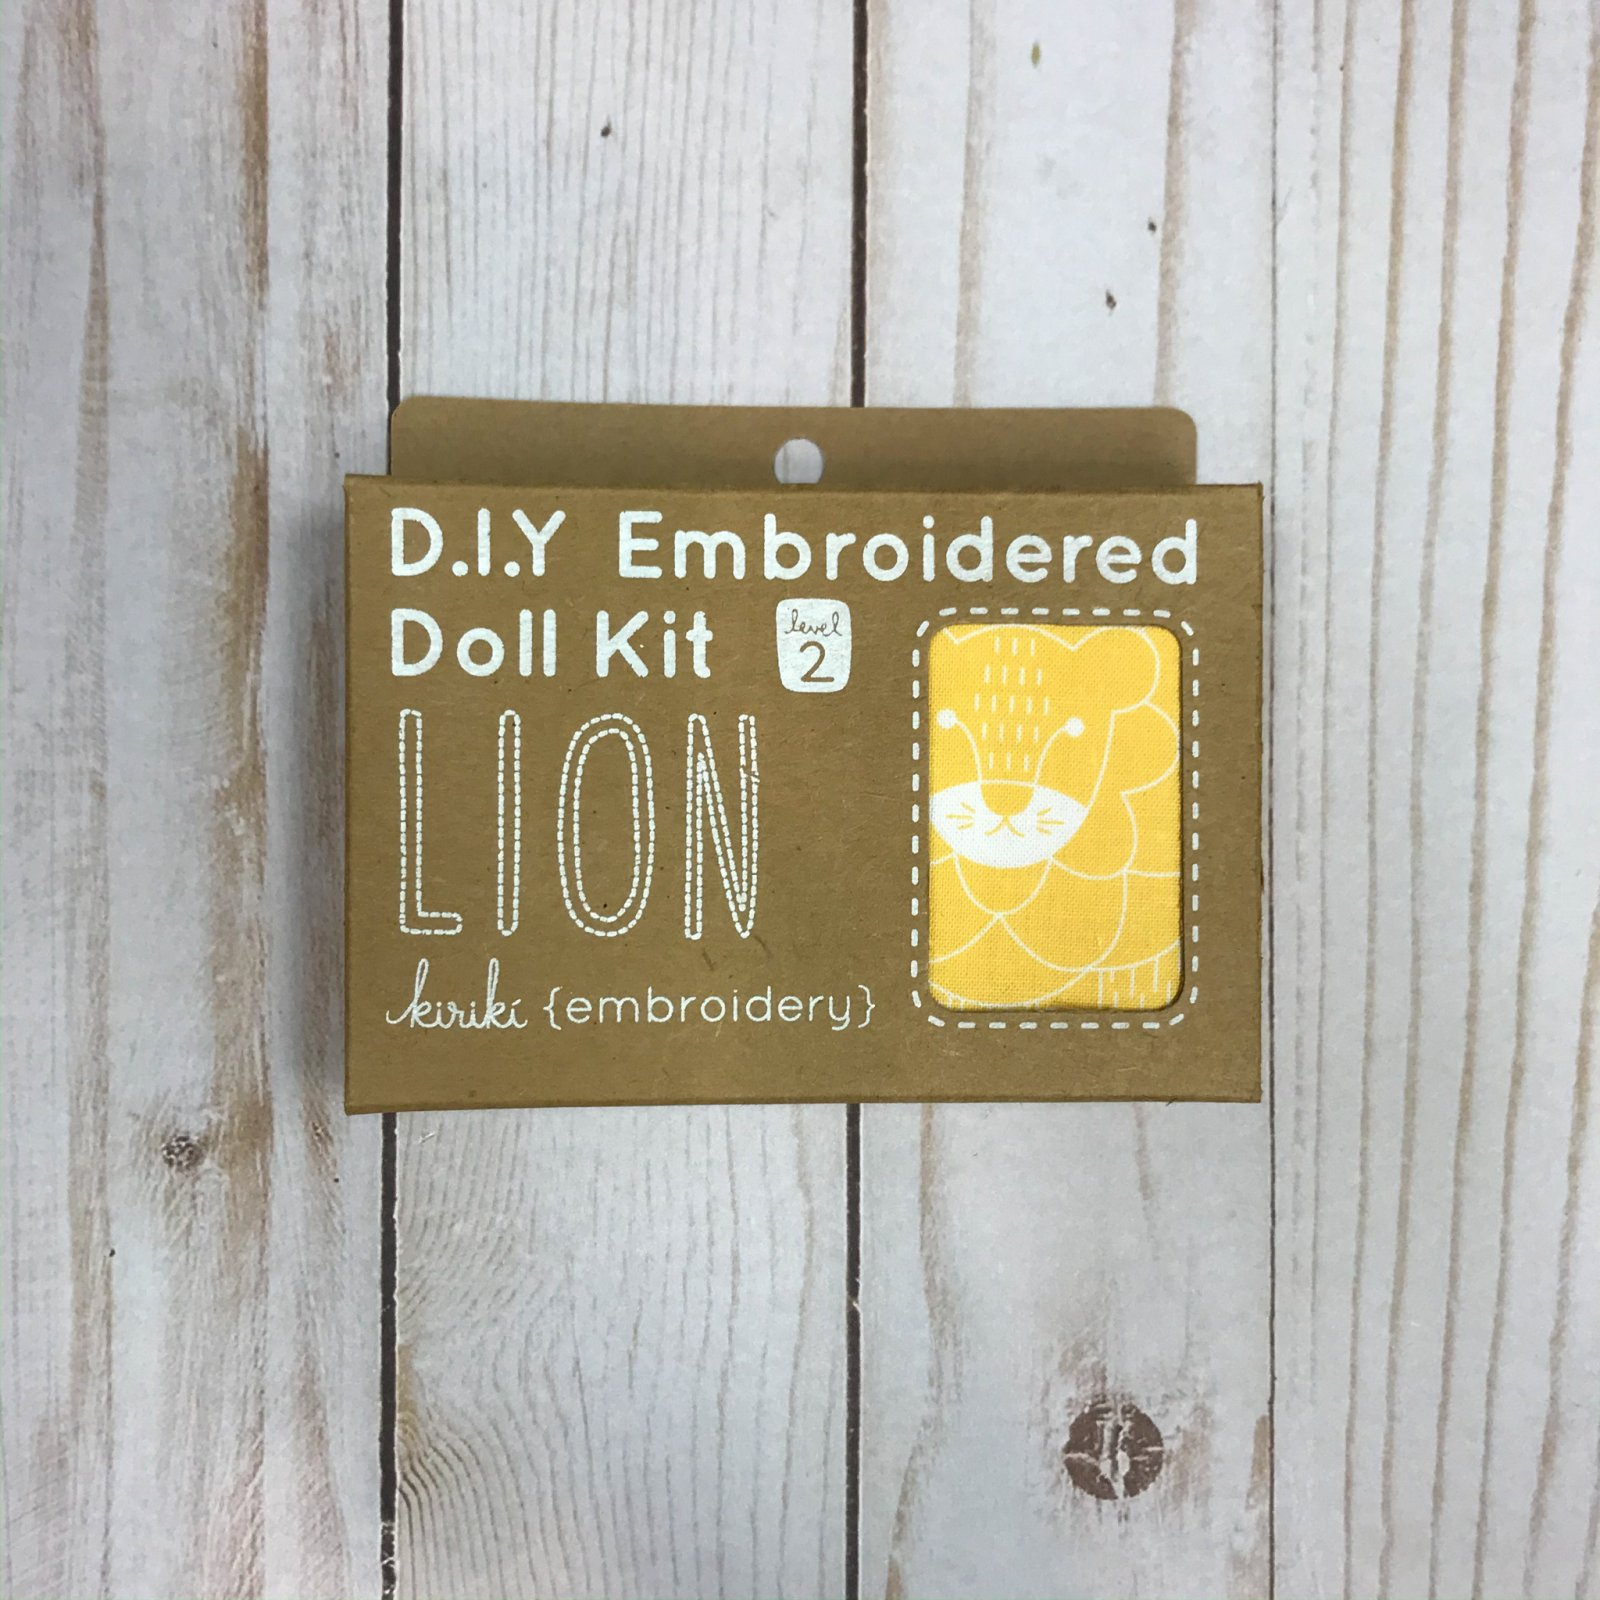 Embroidered Doll Kit - Level 2 - Lion